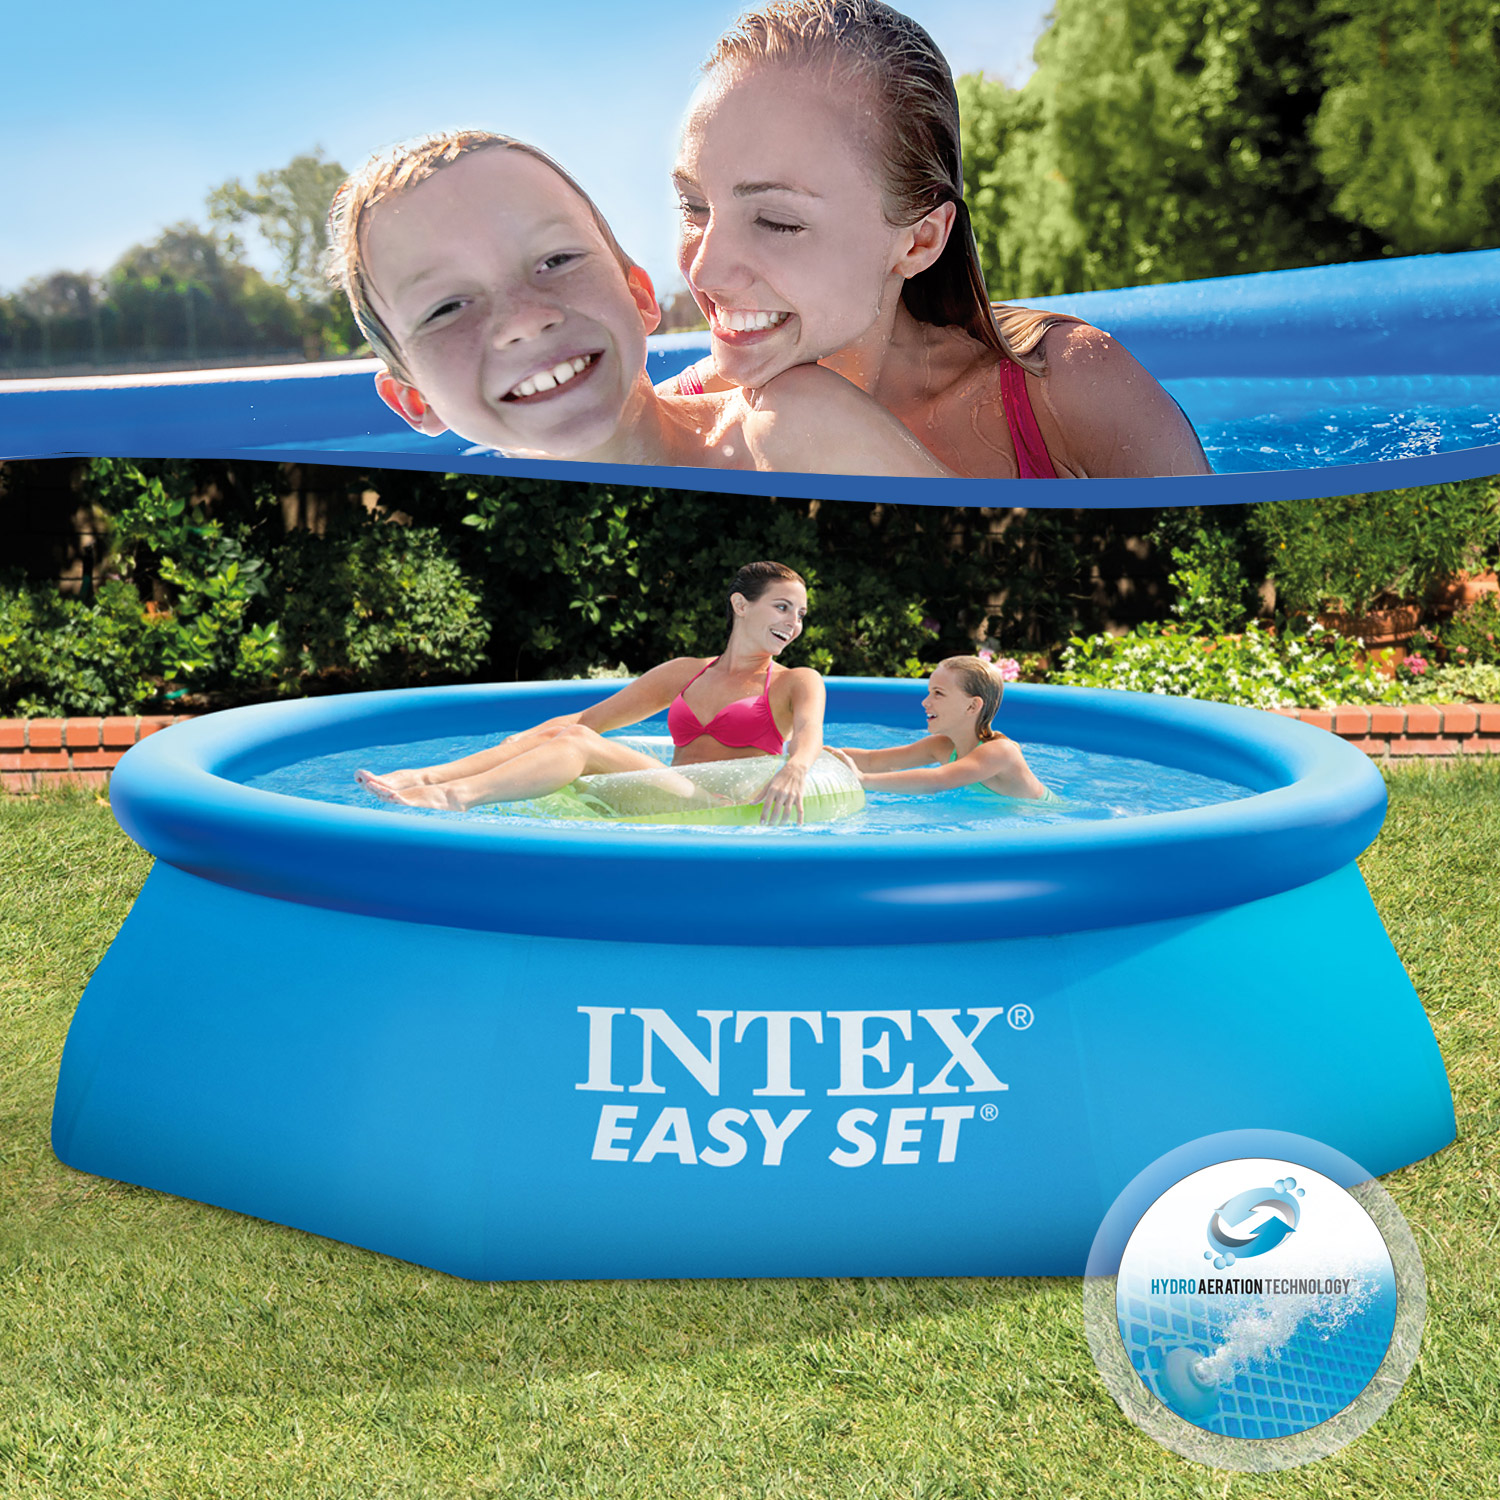 intex swimming pool rund easy schwimmbad schwimmbecken ersatzpool planschbecken ebay. Black Bedroom Furniture Sets. Home Design Ideas